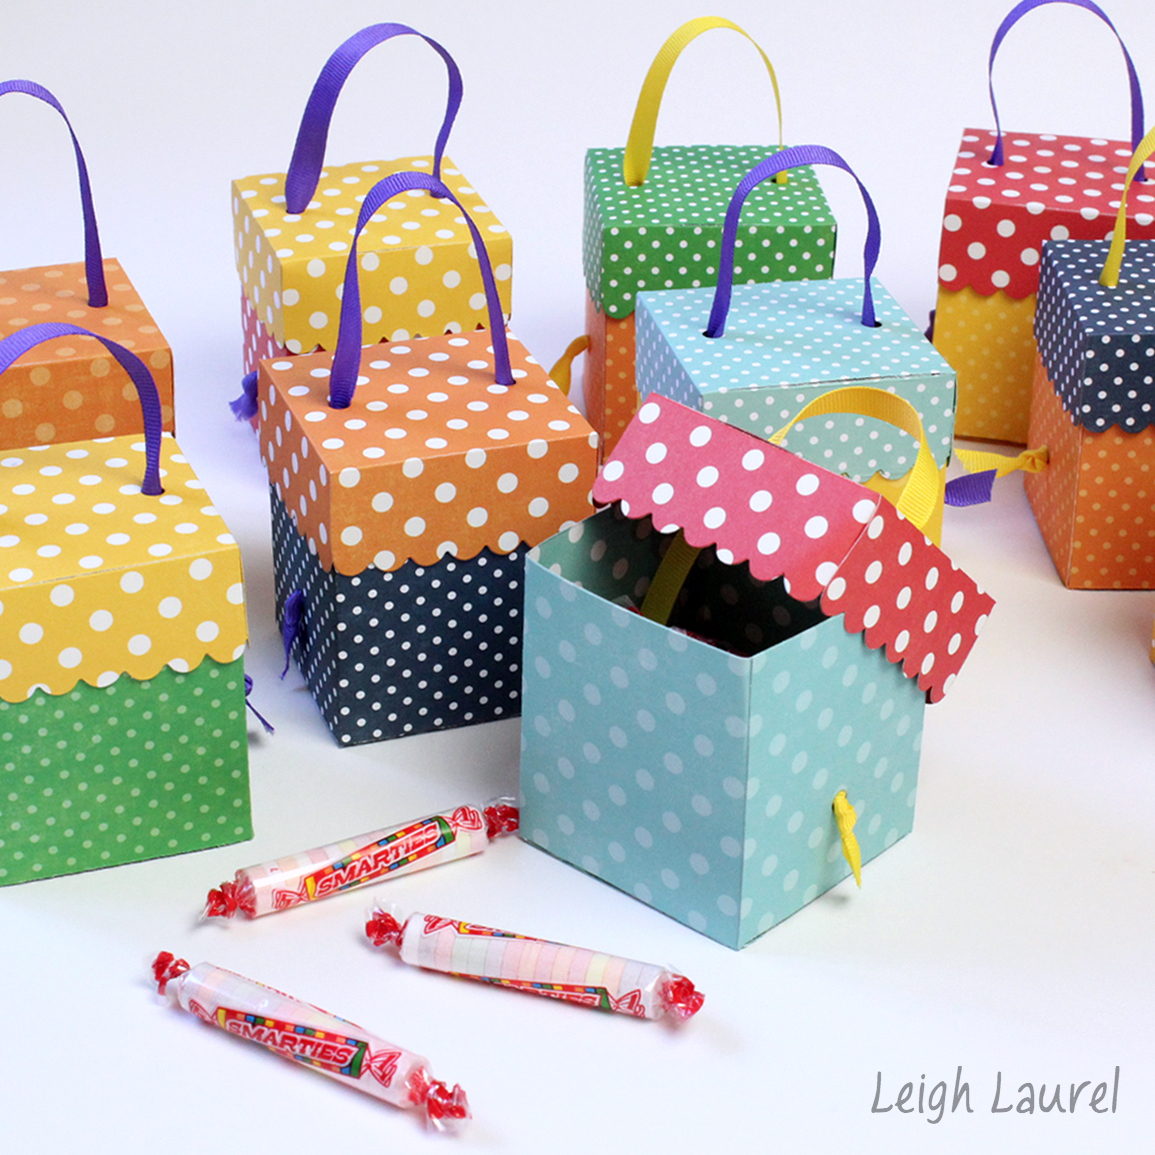 Birthday Party Favor Boxes Made By Karin Jordan Using The Sizzix Scallop Box Die